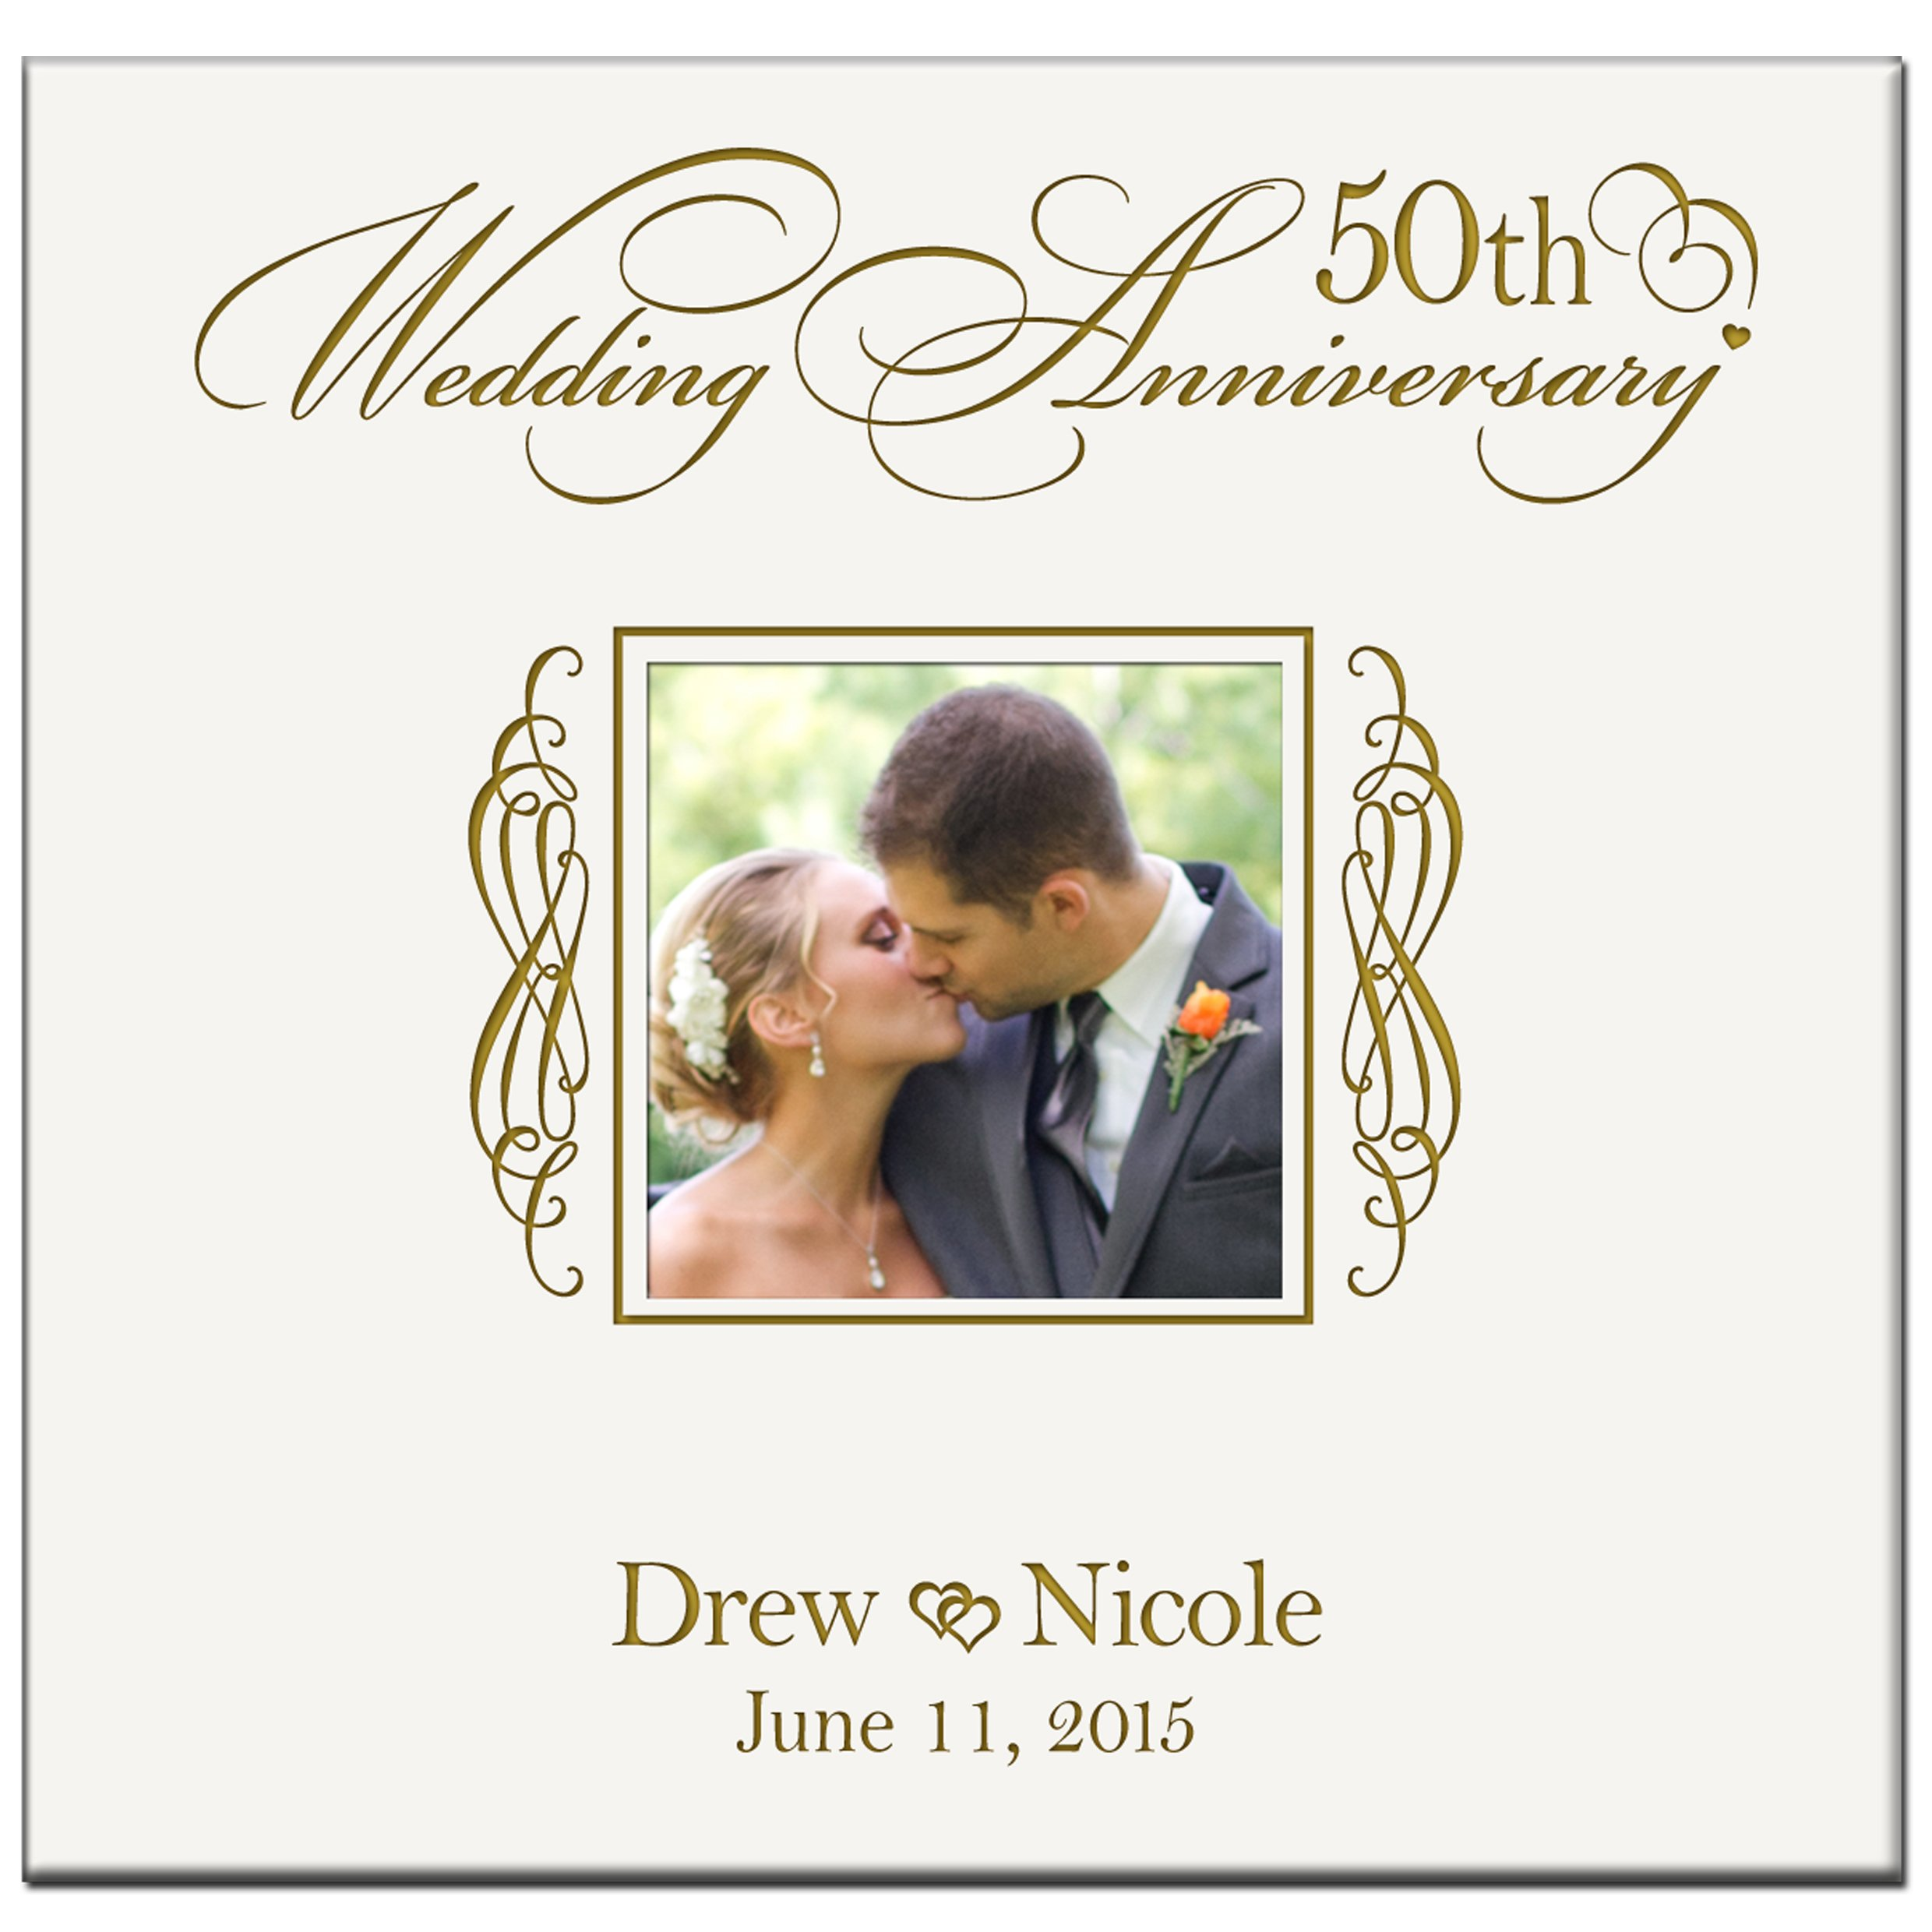 LifeSong Milestones Personalized Mr & Mrs 50th Wedding Photo Album Holds 200 4x6 Photos Wedding Gift Ideas Made By